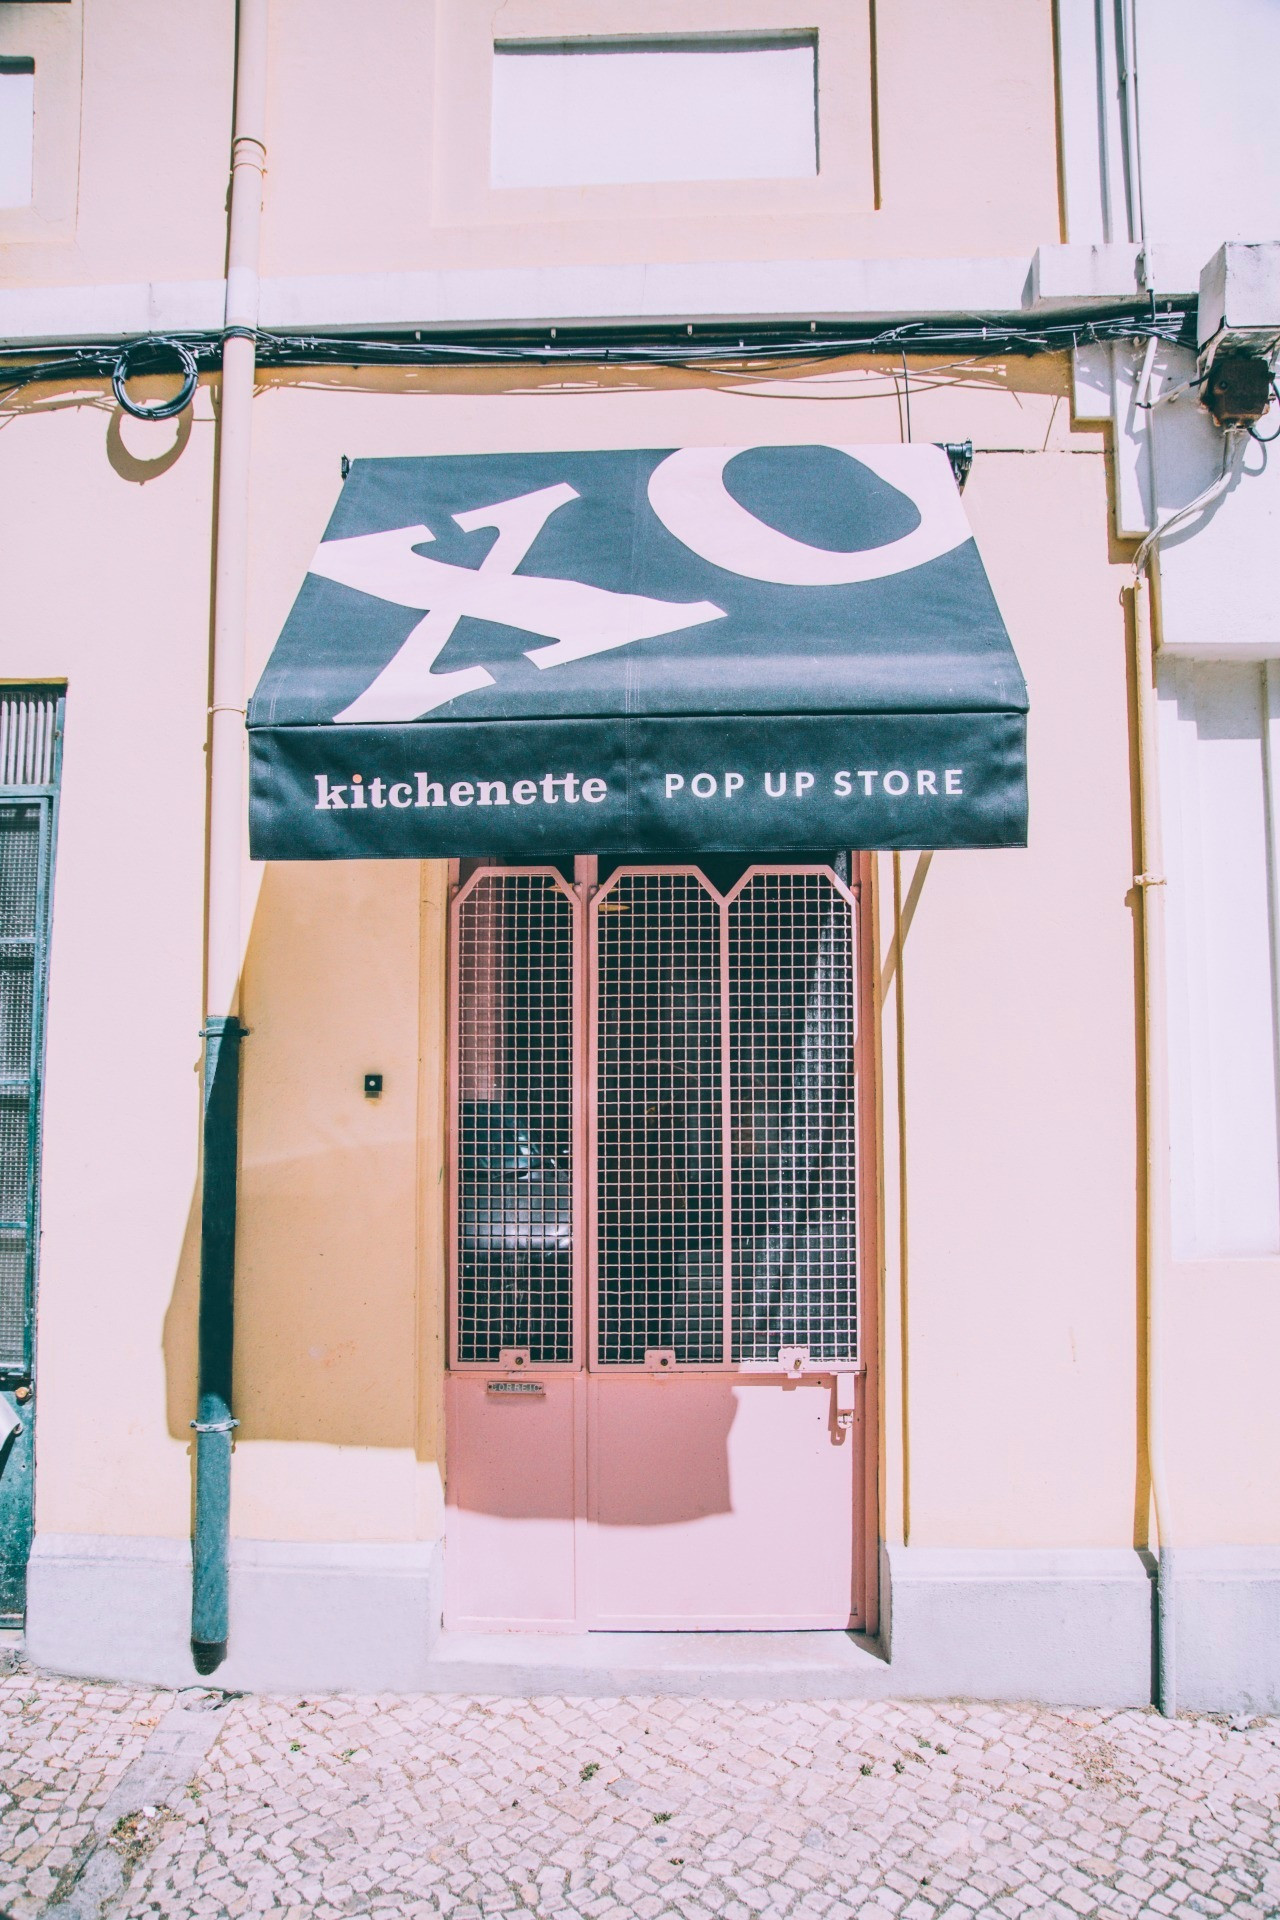 Kitchenette Pop Up Store_3.jpeg